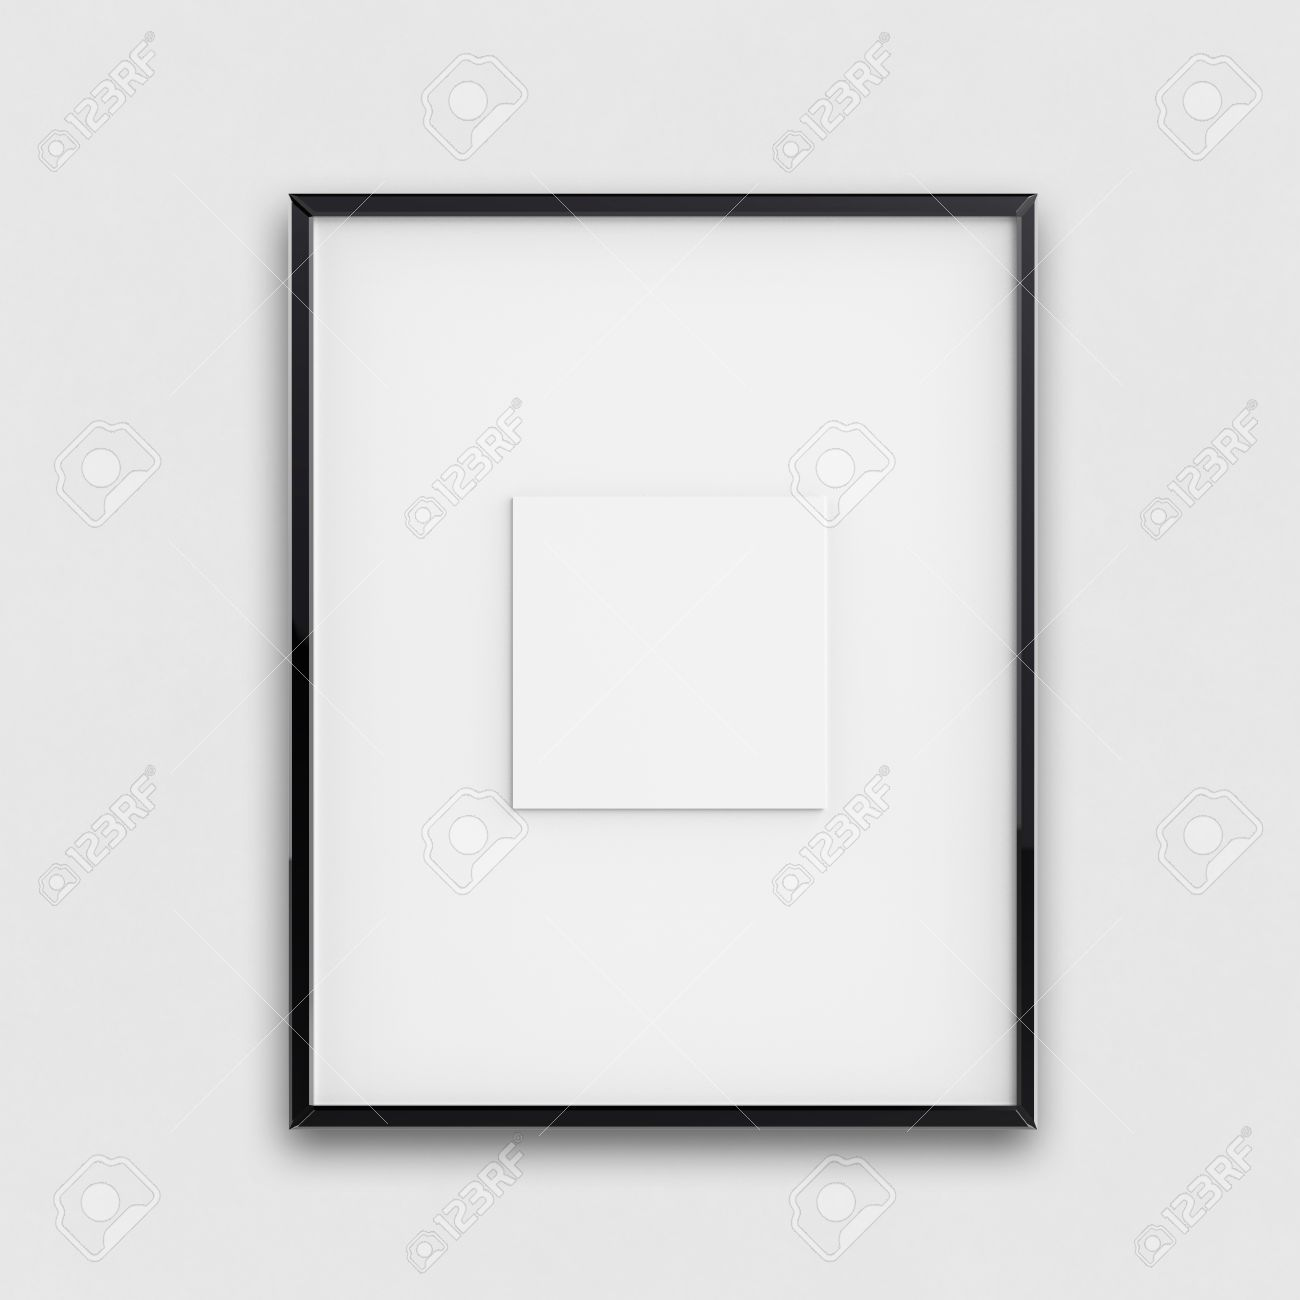 Blank Modern 3d Frame On Texture Background As Concept Stock Photo ...